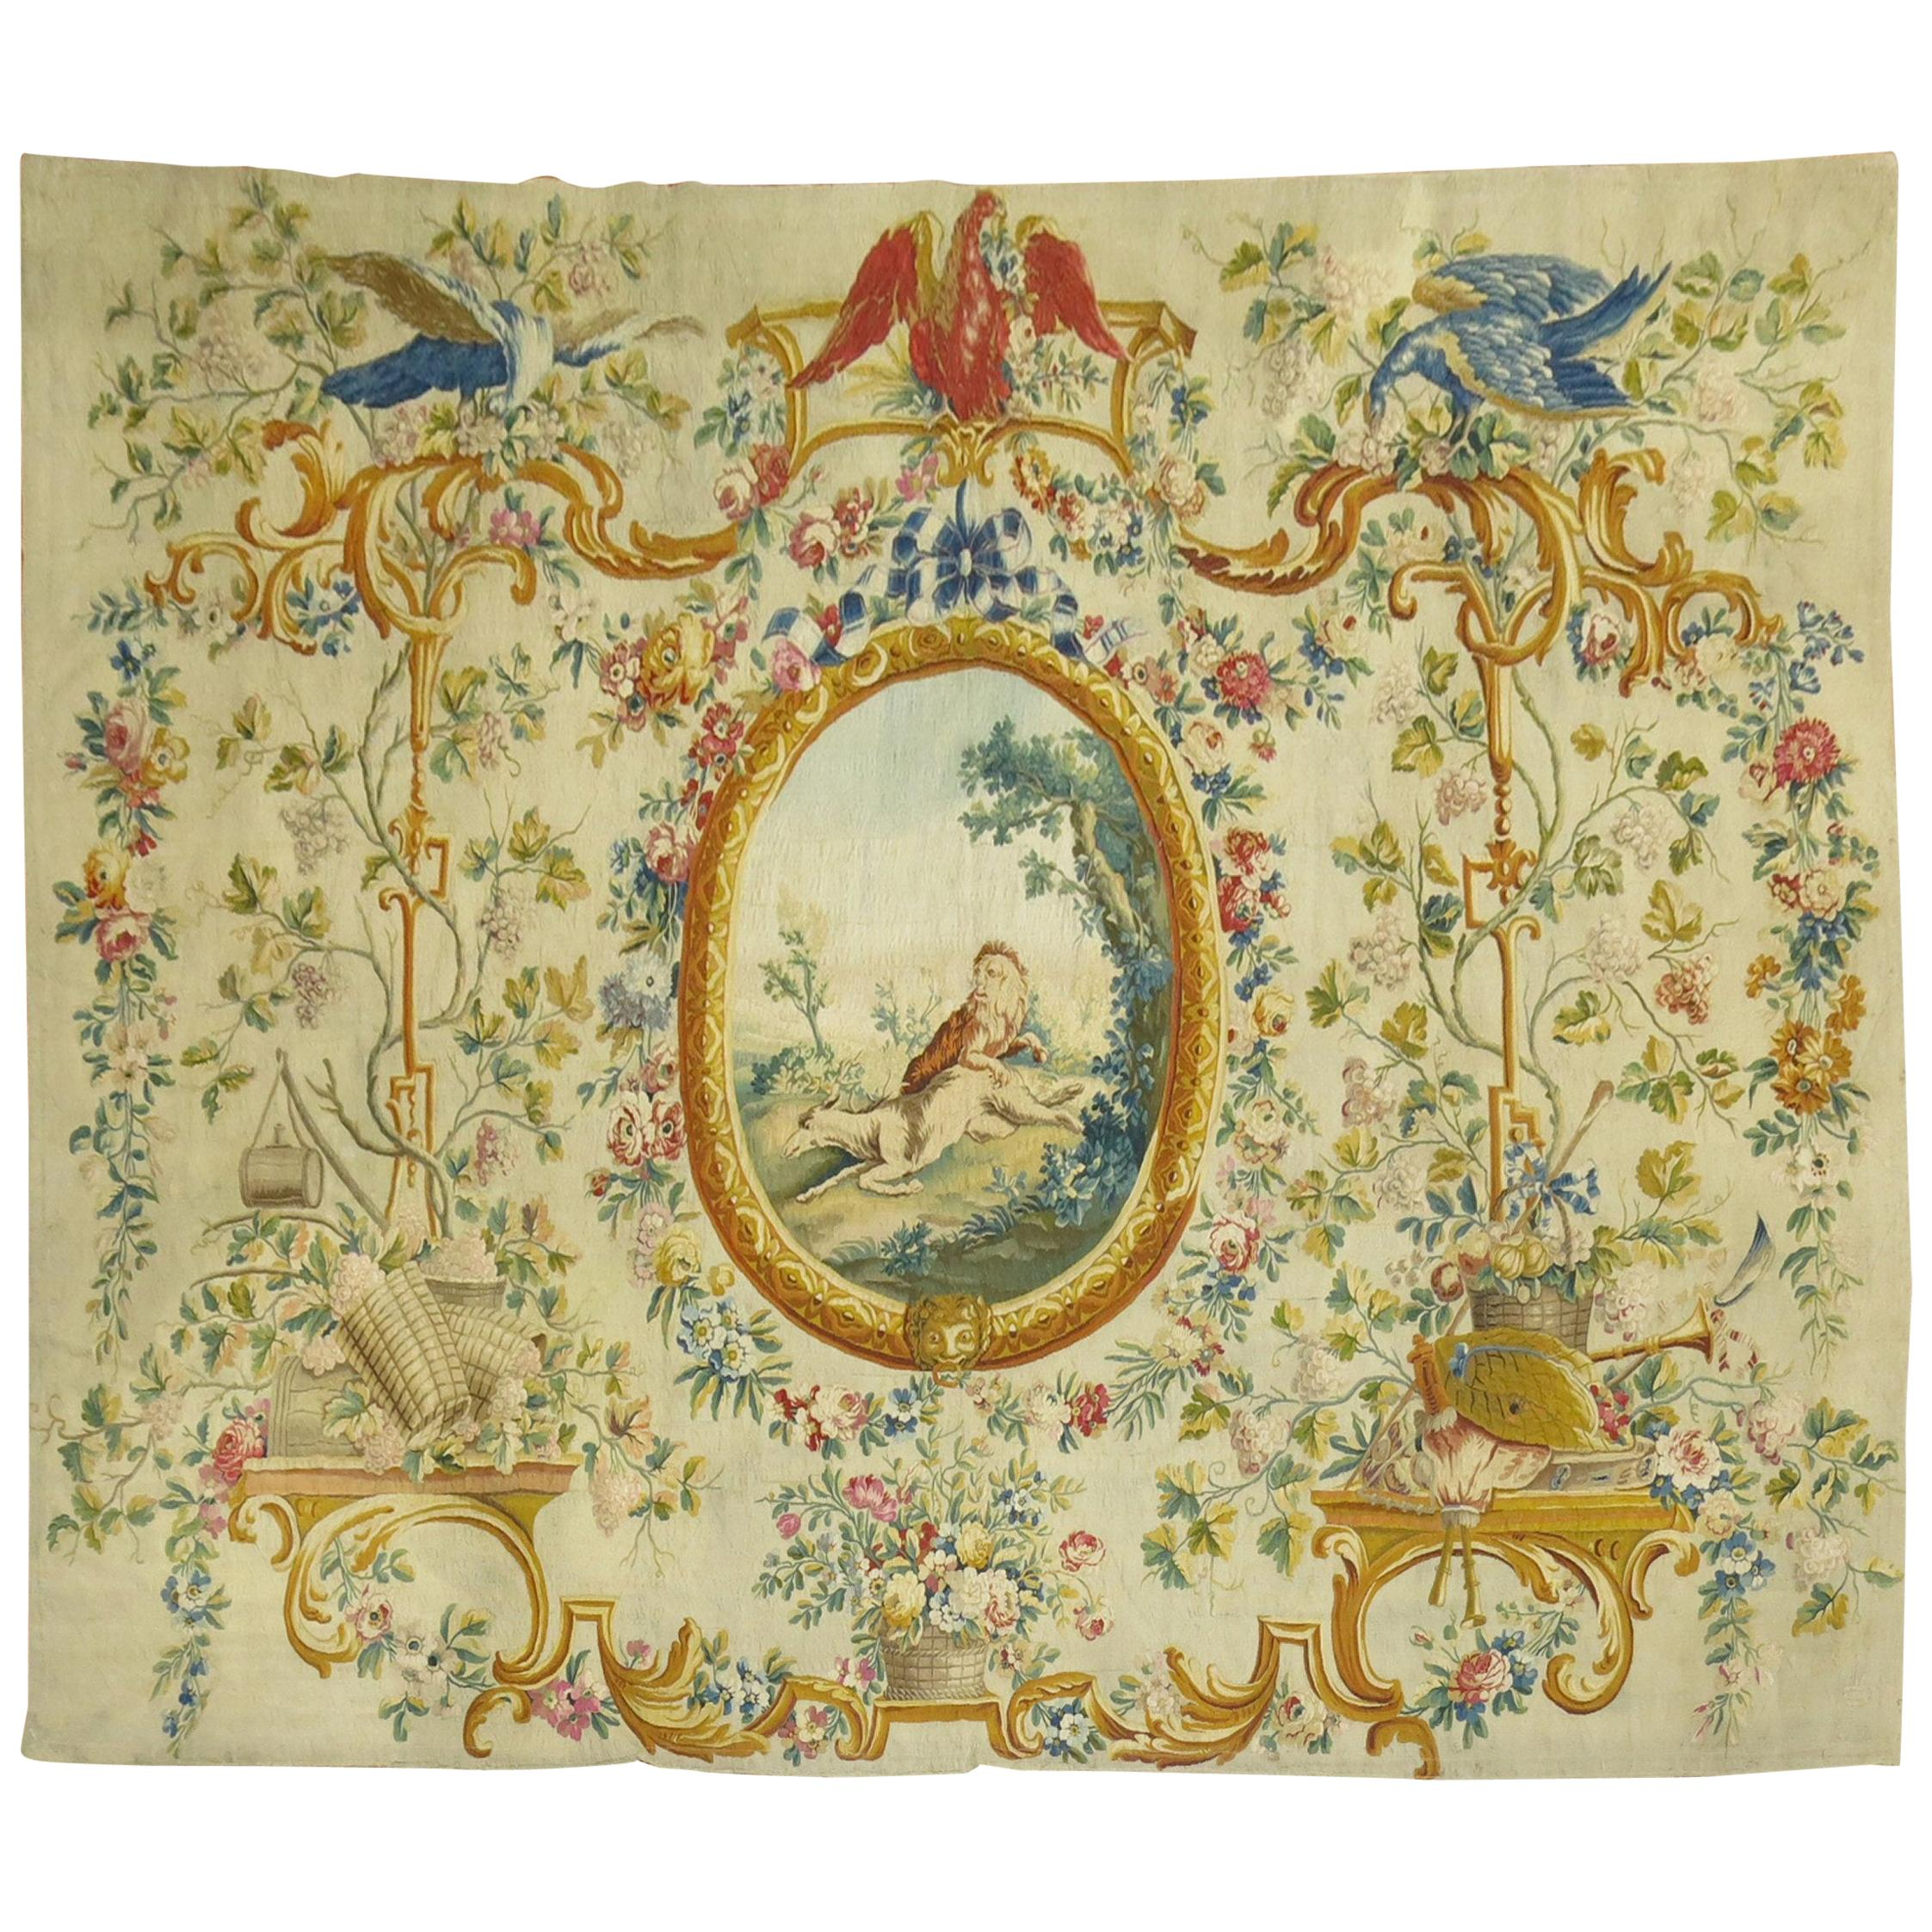 Silk and Wool 18th Century French Aubusson Tapestry Panel from France